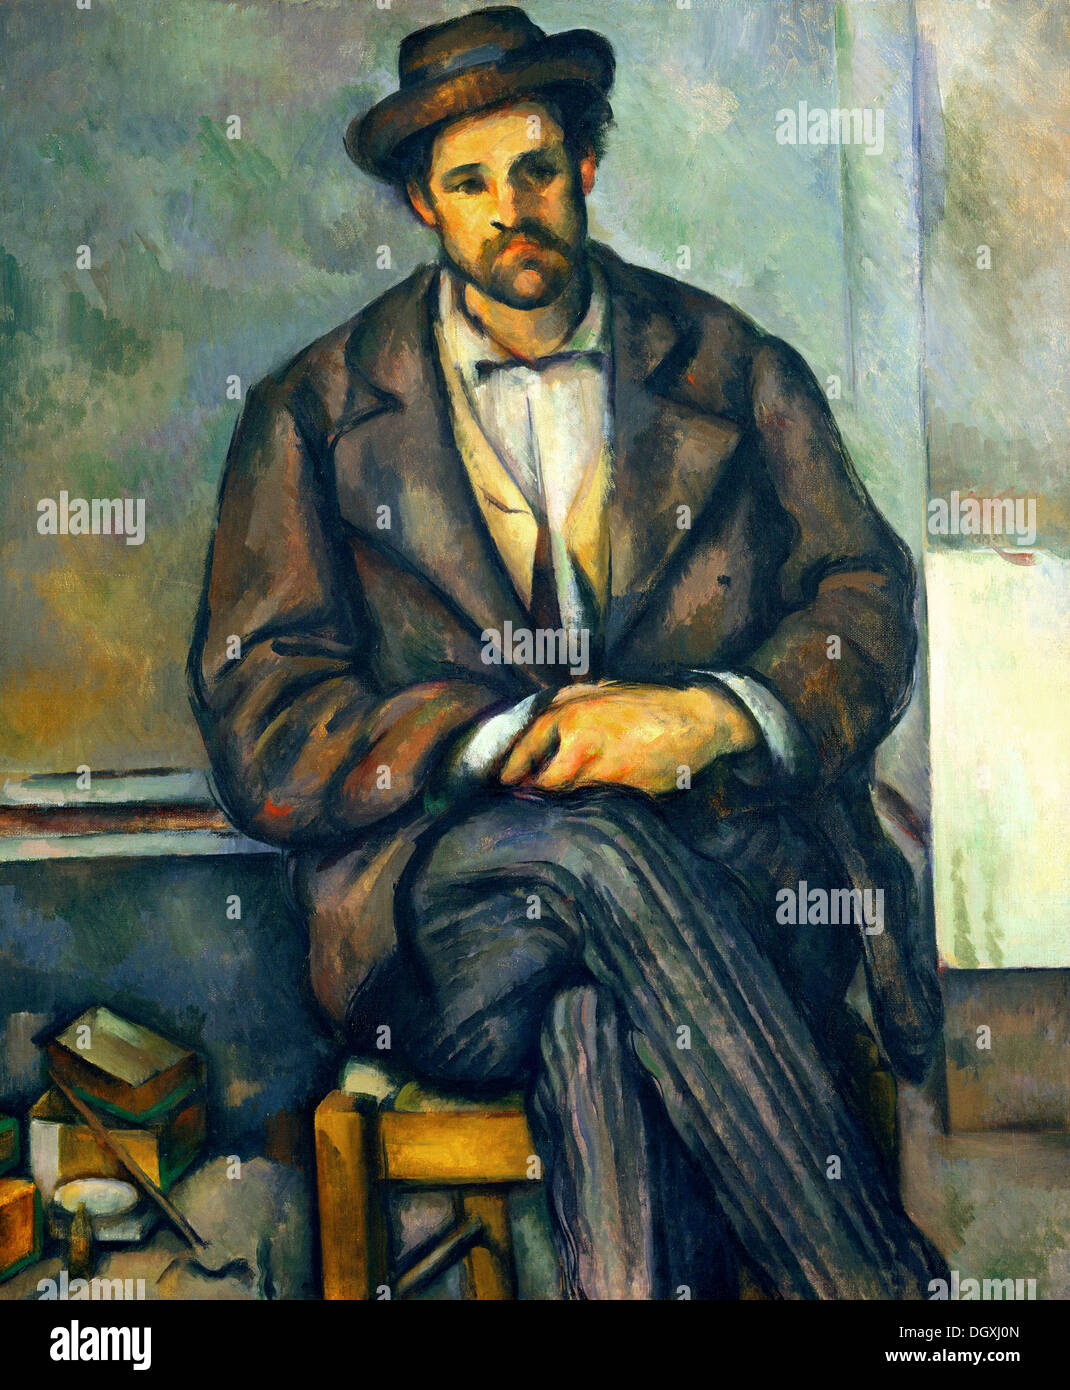 Seated Peasant - by Paul Cézanne, 1896 - Stock Image